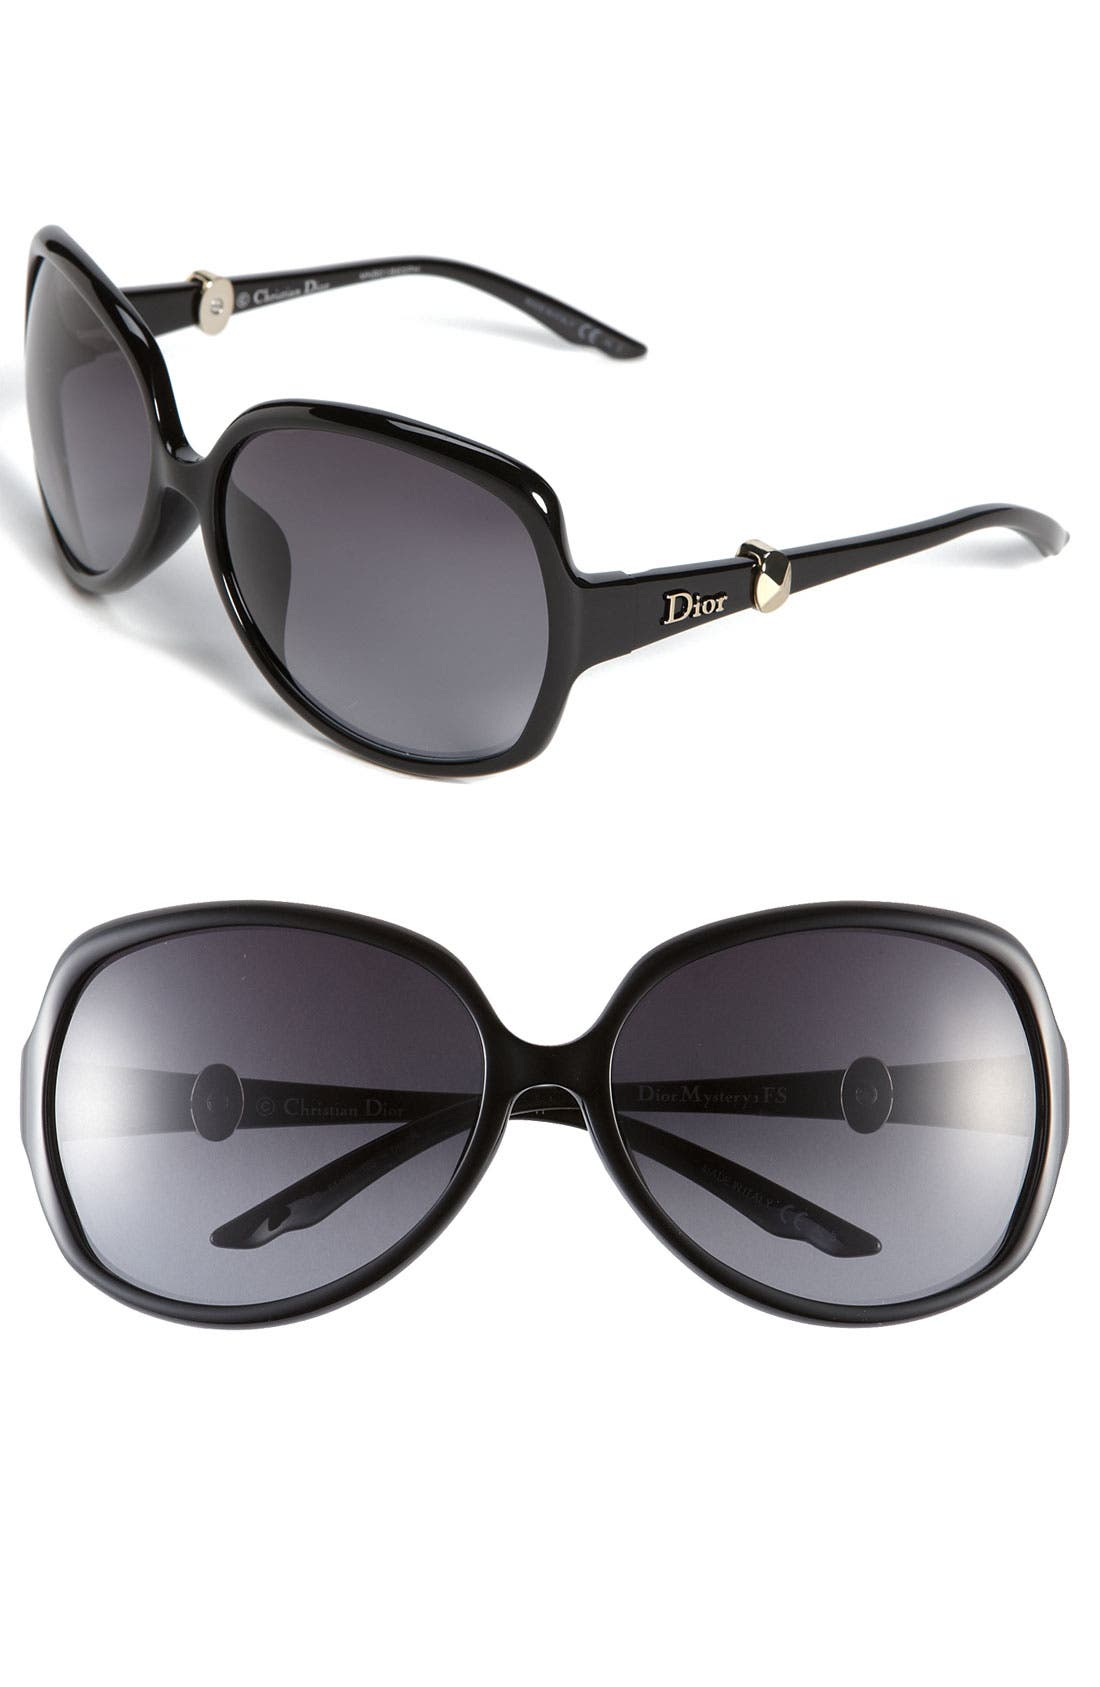 Main Image - Dior 'Mystery - Special Fit' 61mm Sunglasses